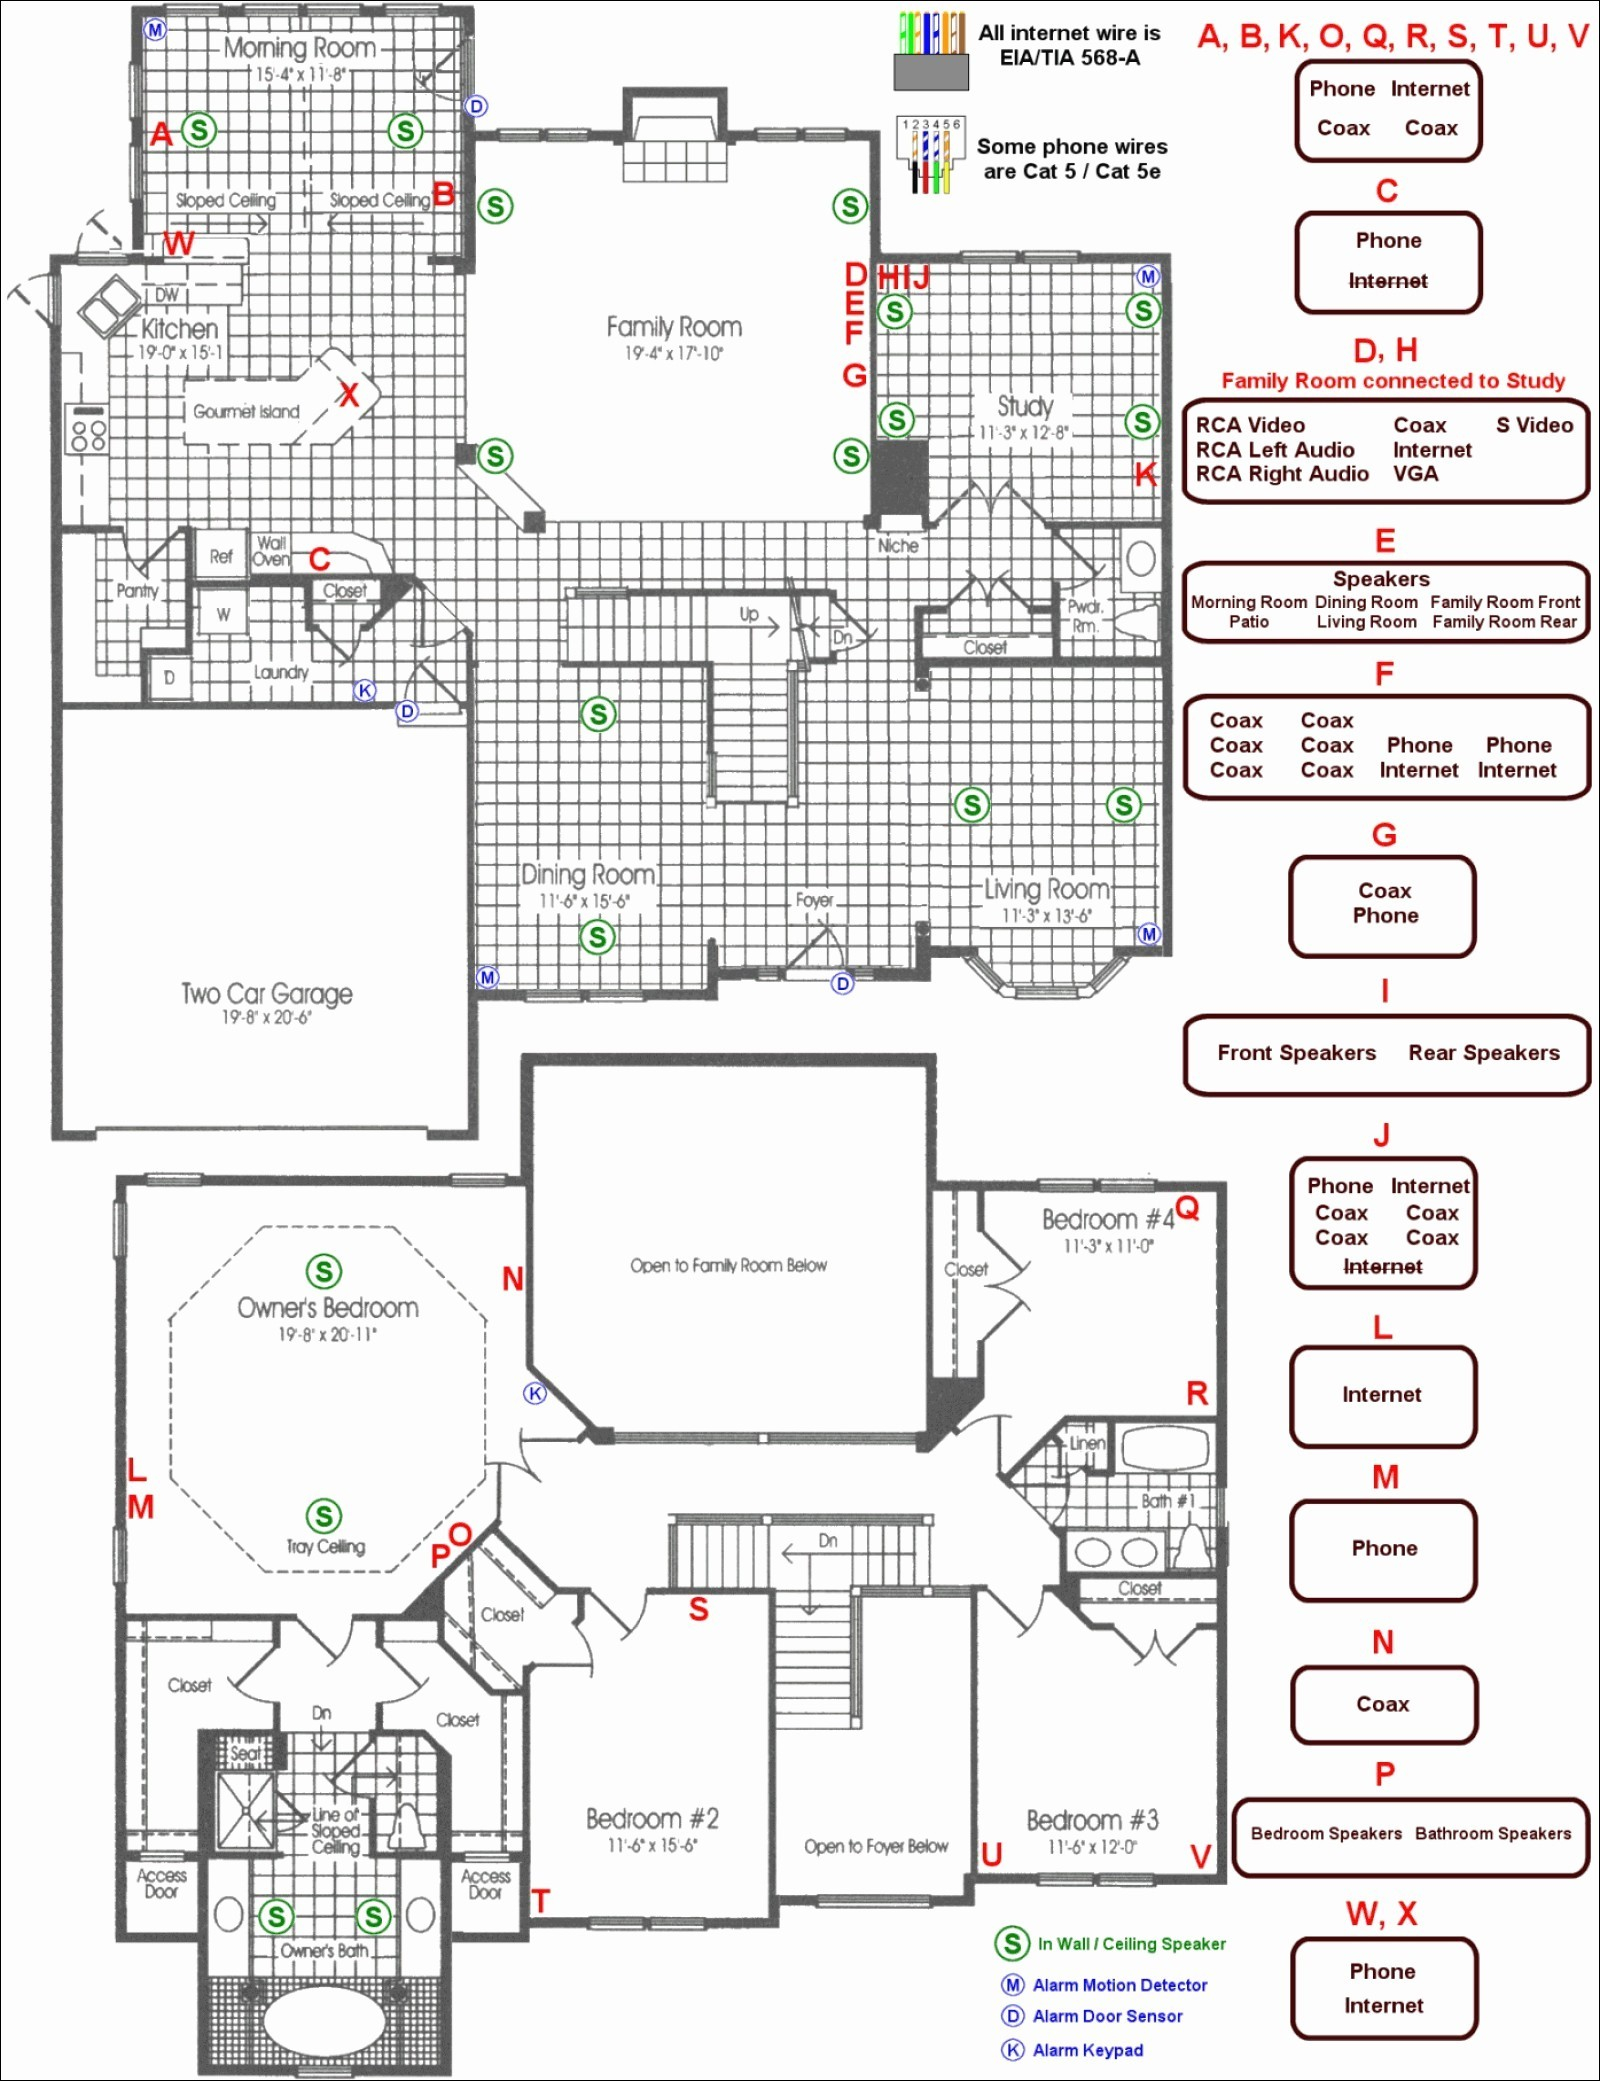 Whole House Audio System Wiring Diagram - Panoramabypatysesma - Whole House Audio System Wiring Diagram